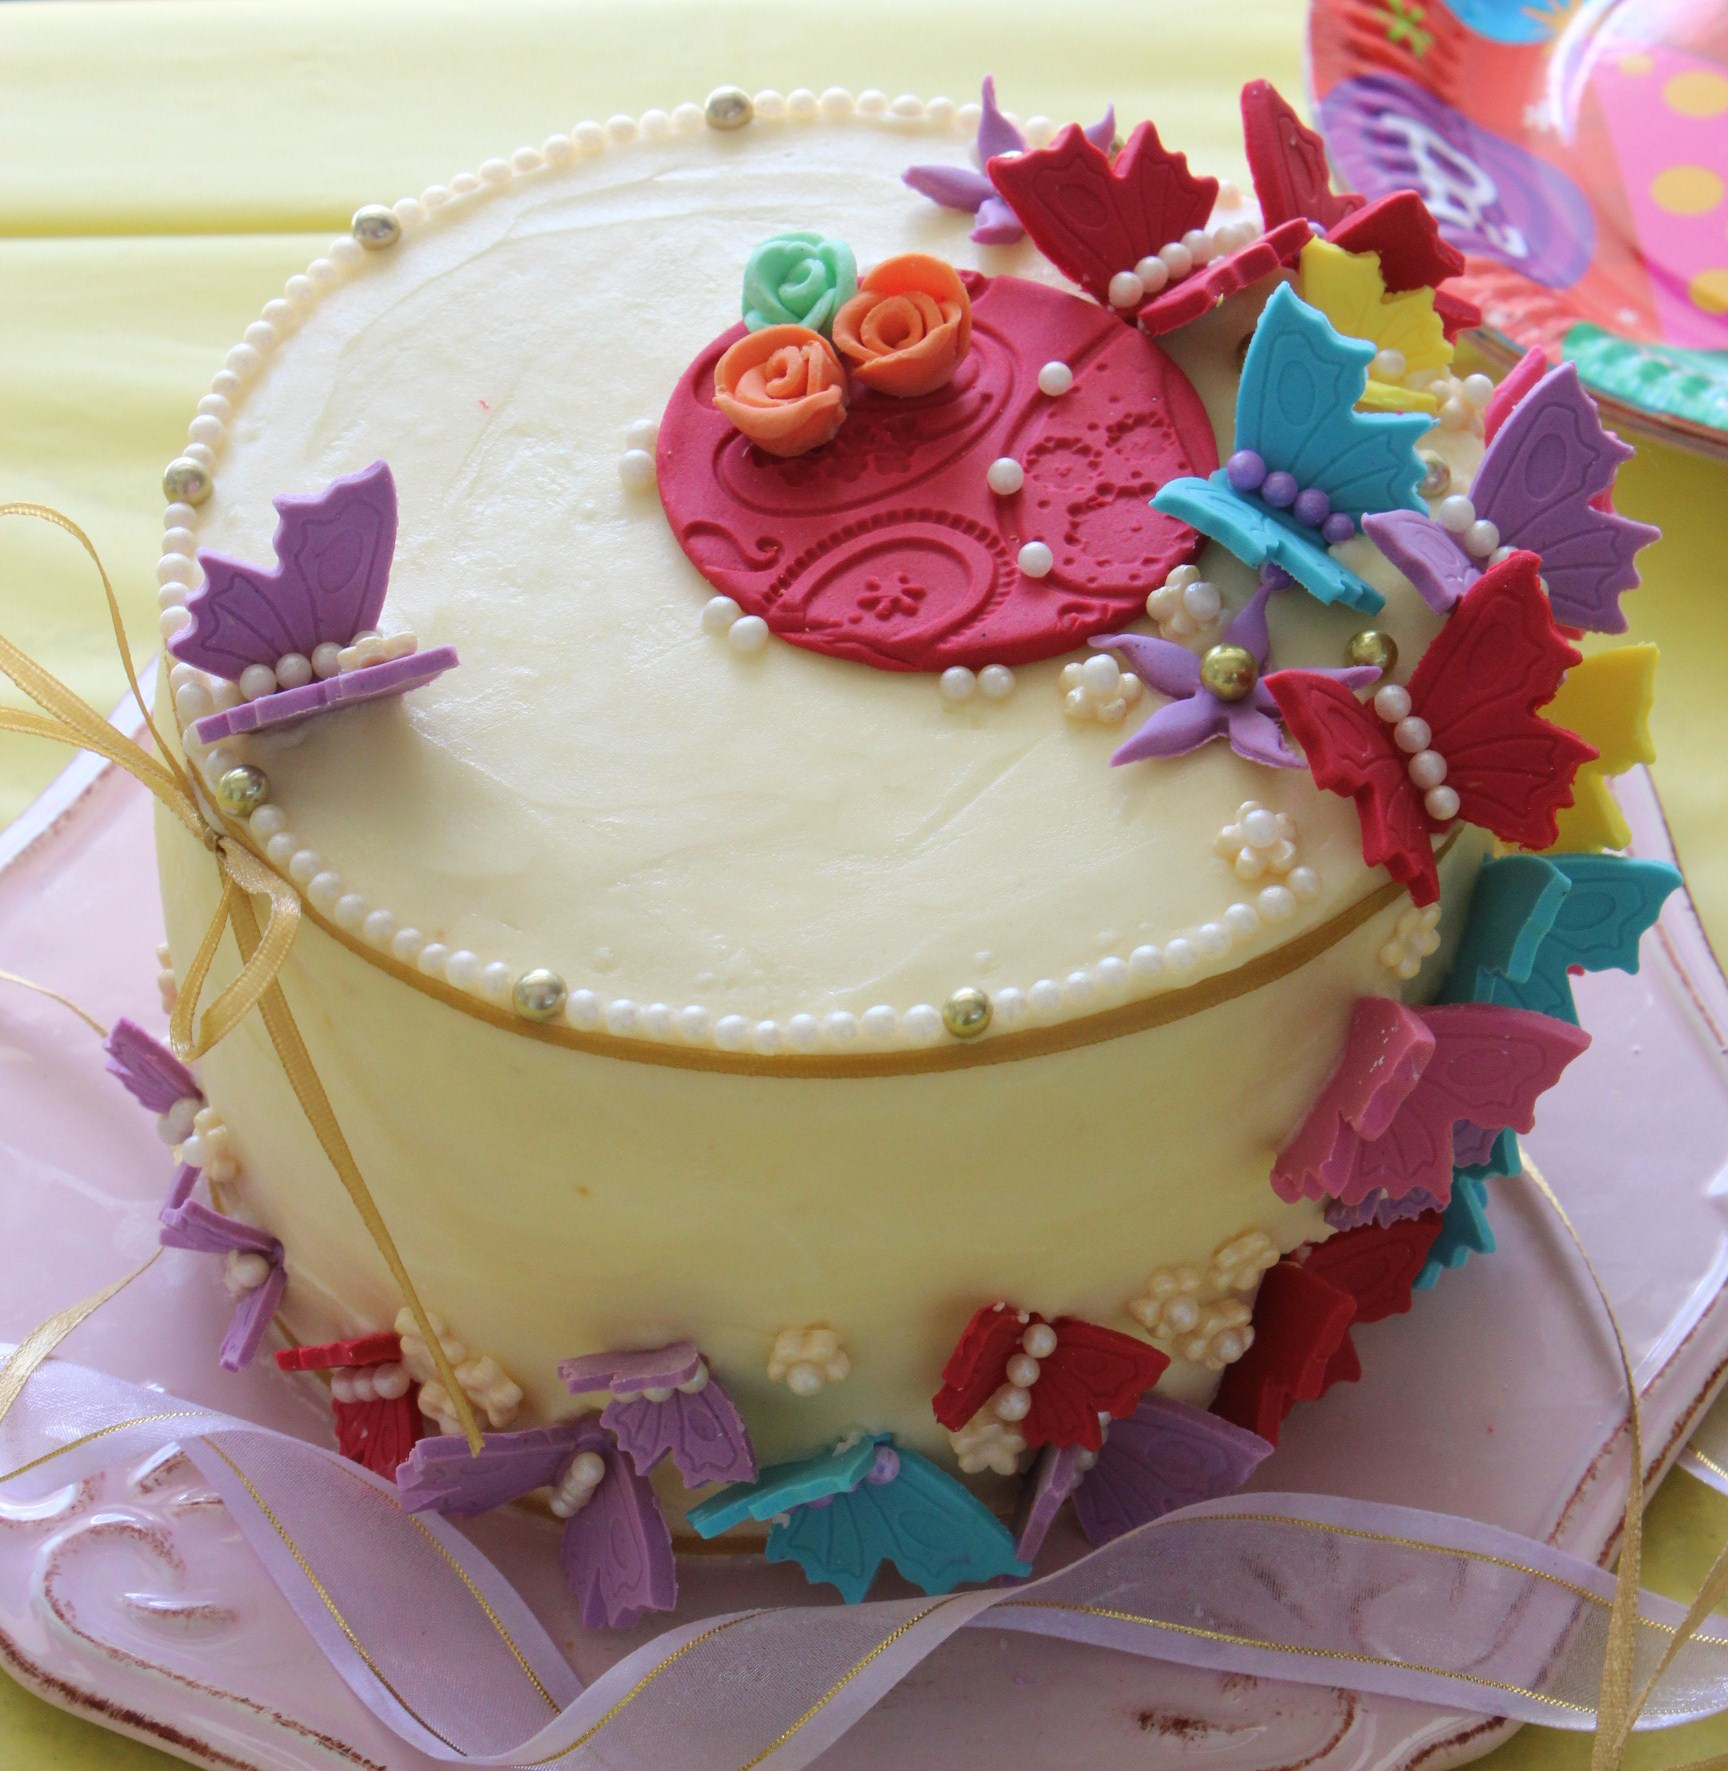 31 most beautiful birthday cake images for inspiration - HD1728×1771